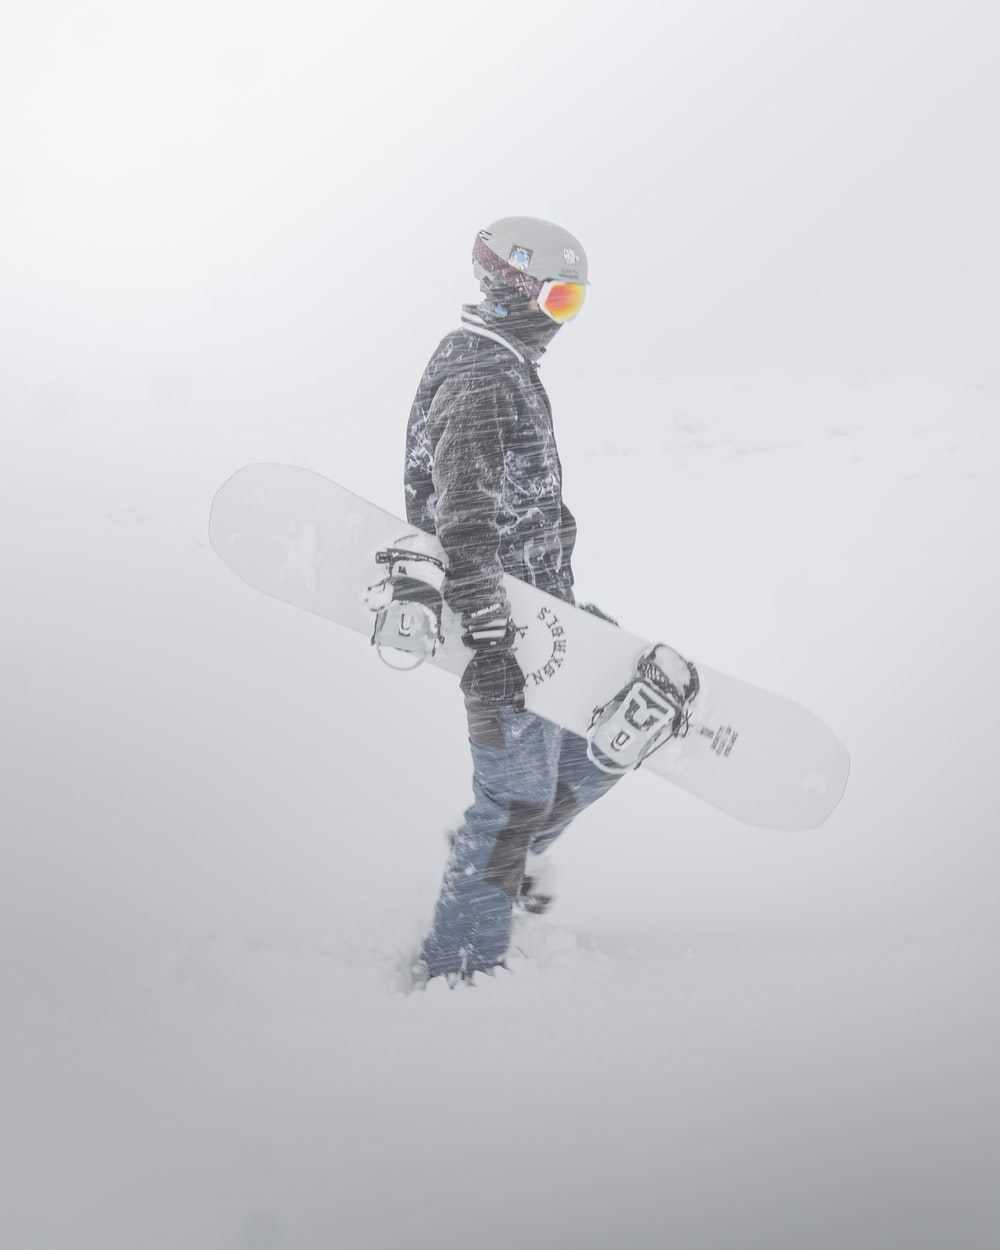 person in black and white pants and black snow shoes standing on snow covered ground during